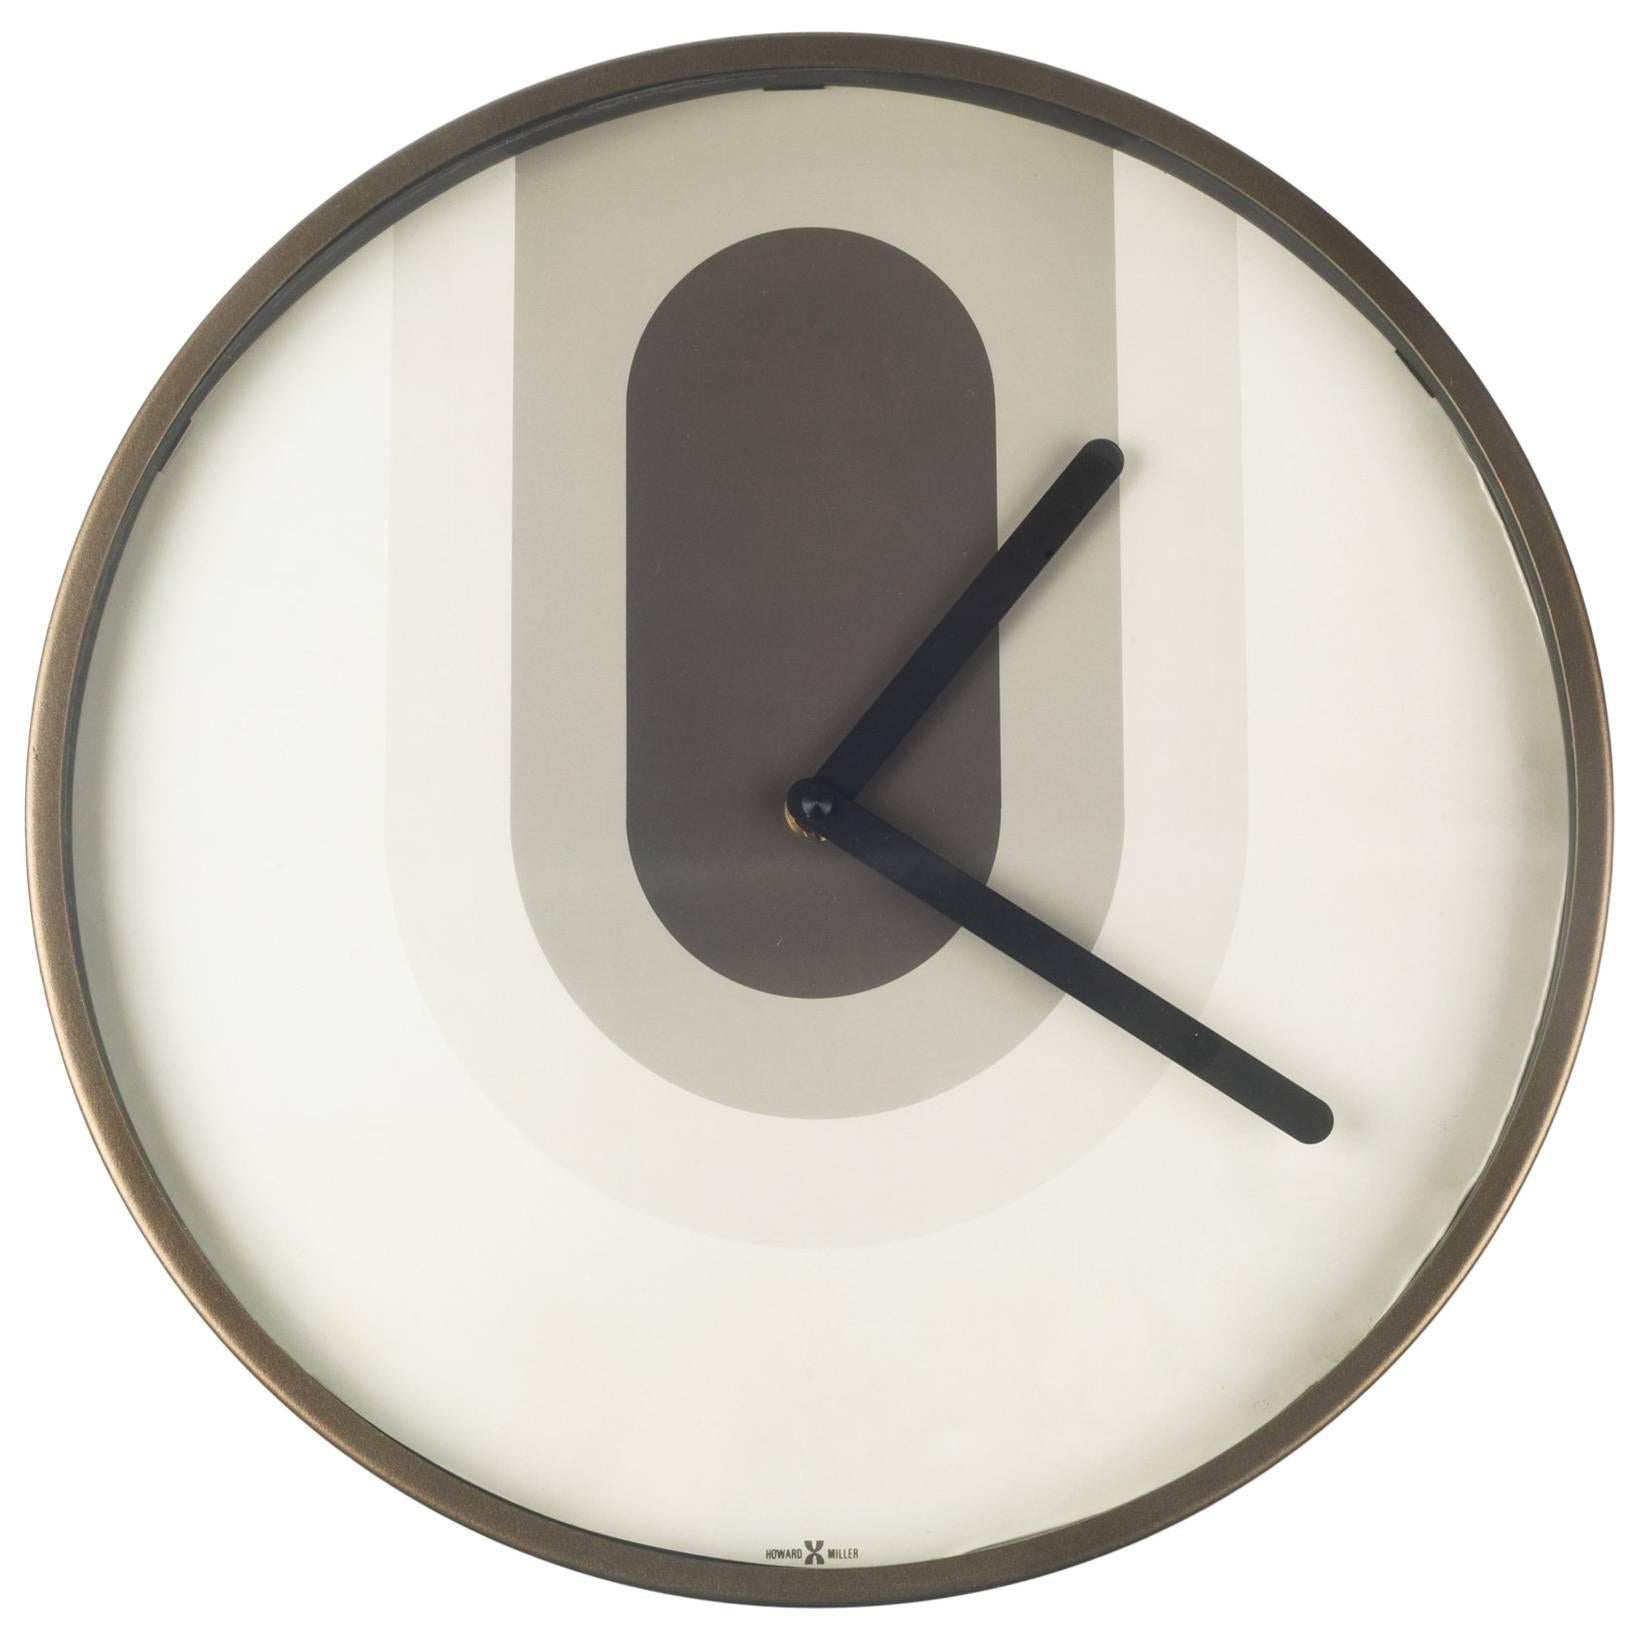 howard miller wall clock in metal glass with beige grey bronze color - Howard Miller Wall Clocks